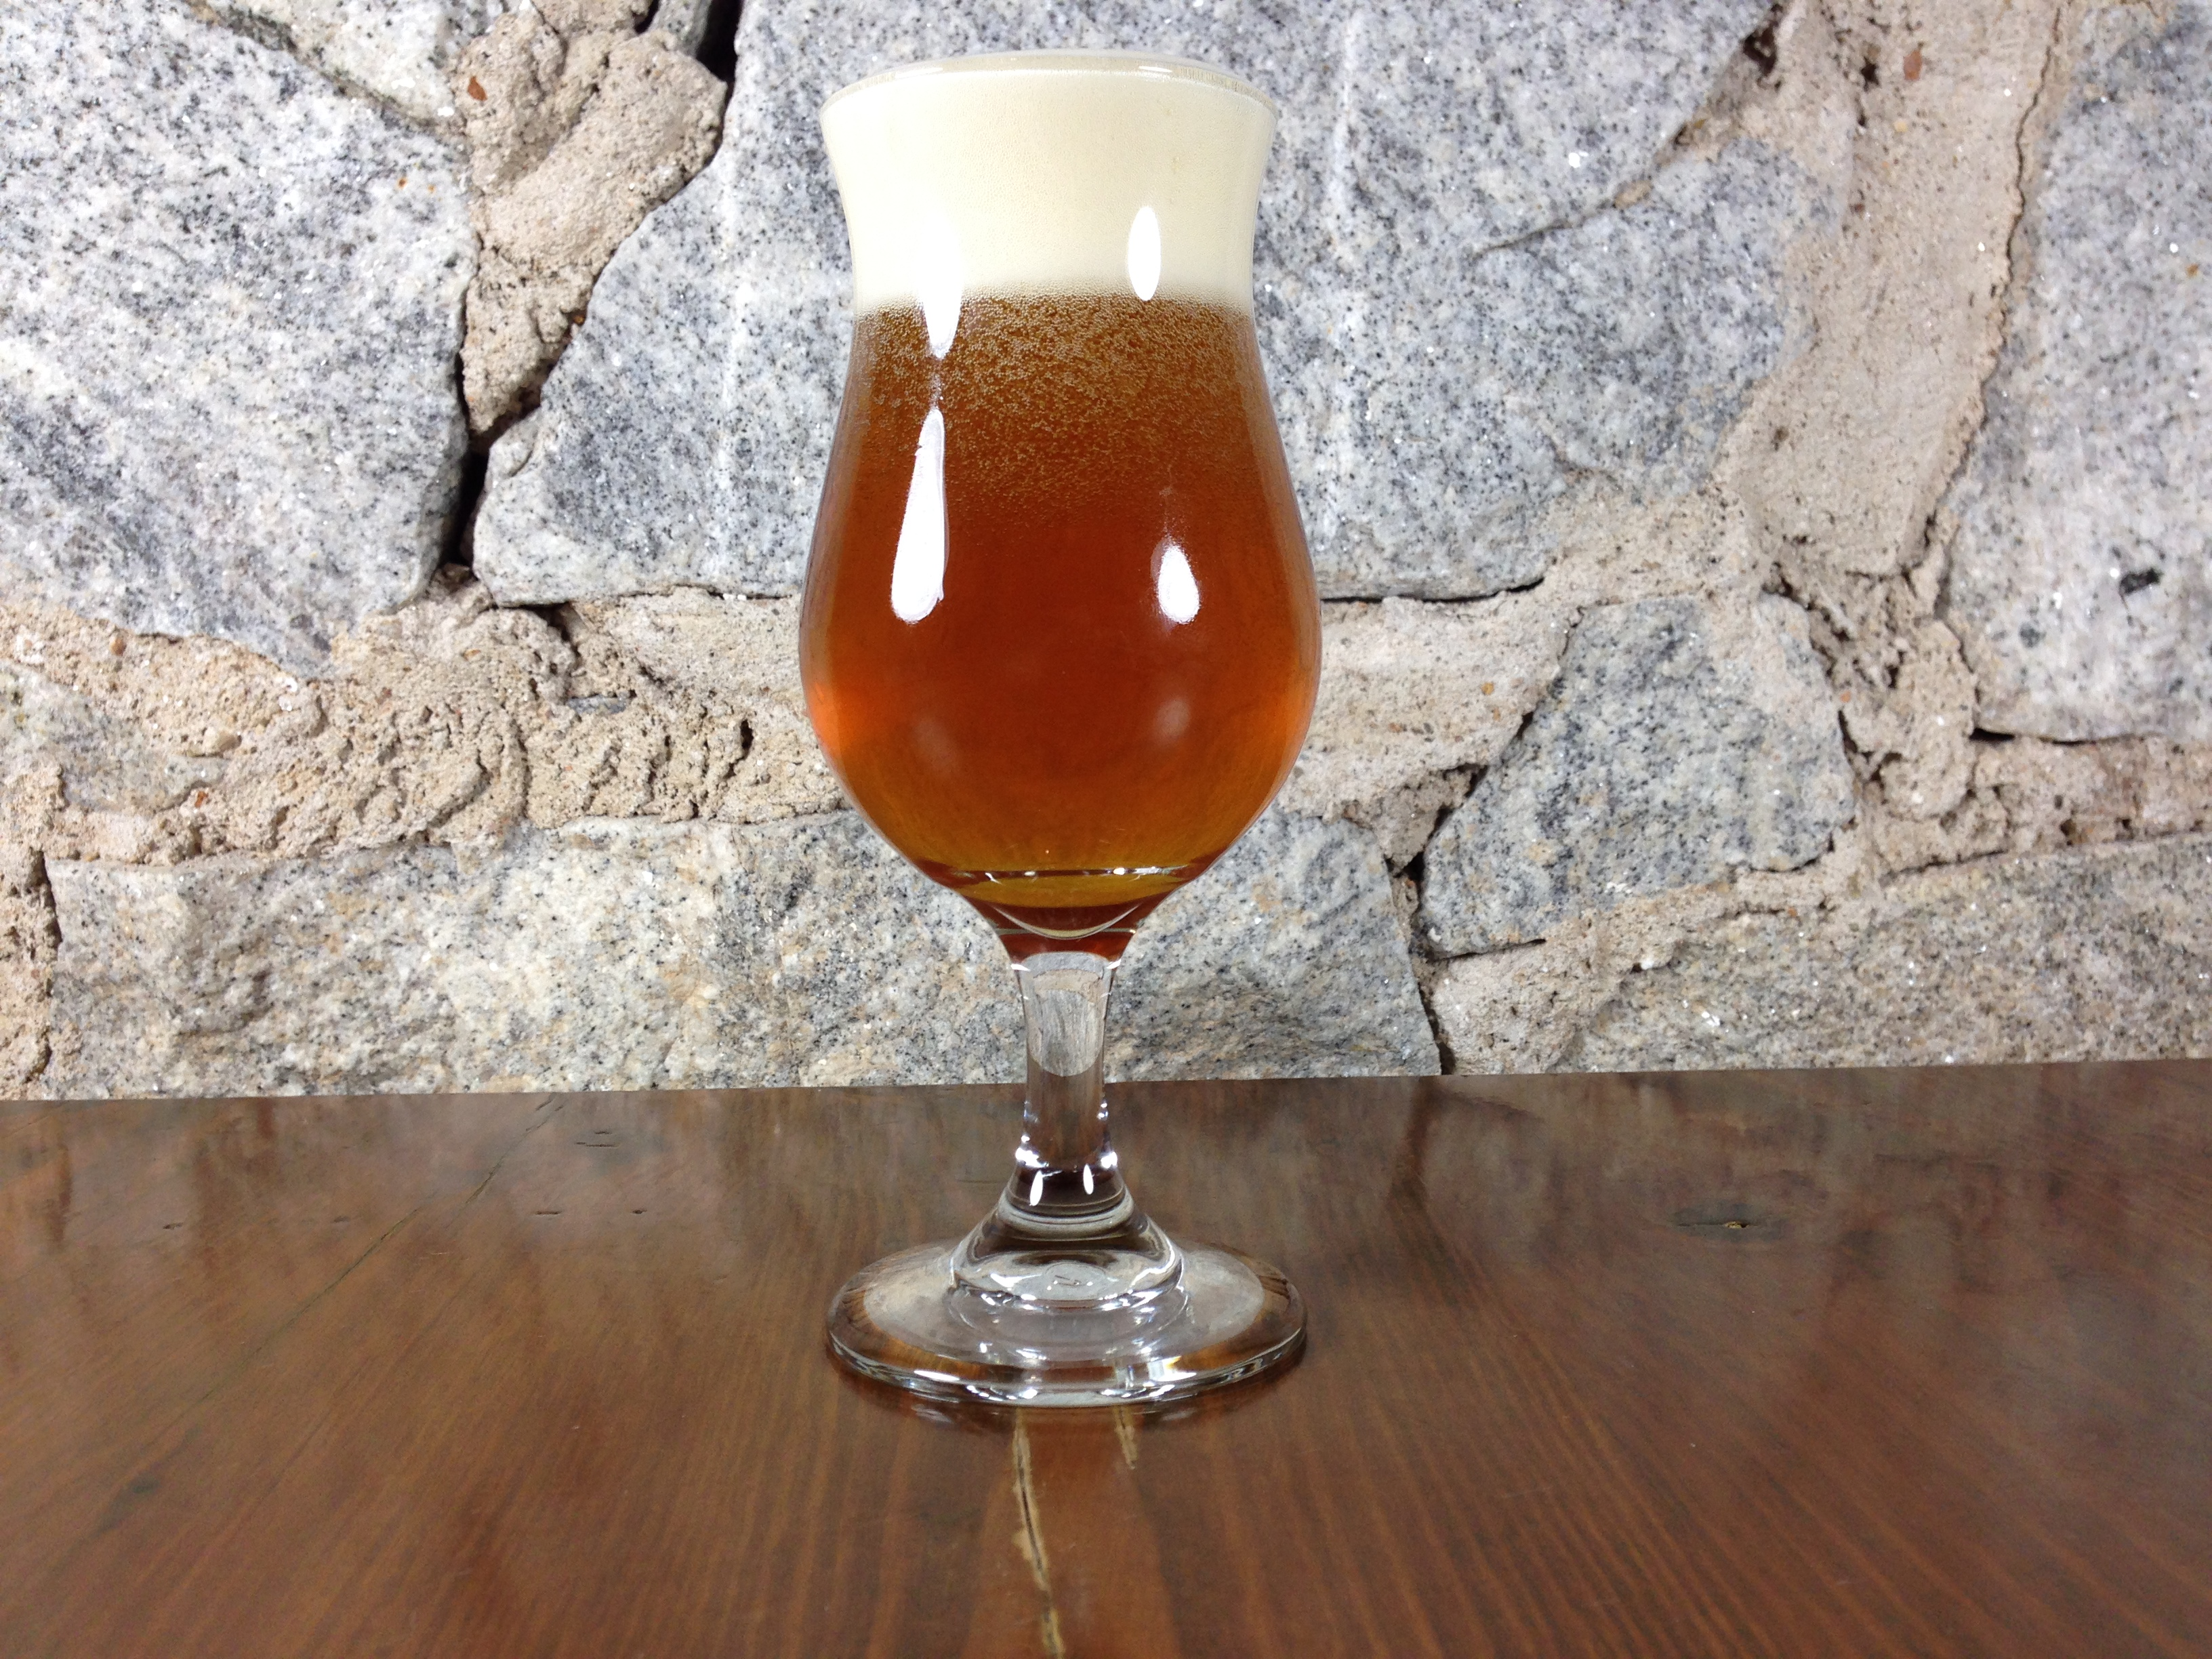 Saison Belgian Farmhouse Ale Saison Duponce Wrecking Bar Brew Pub